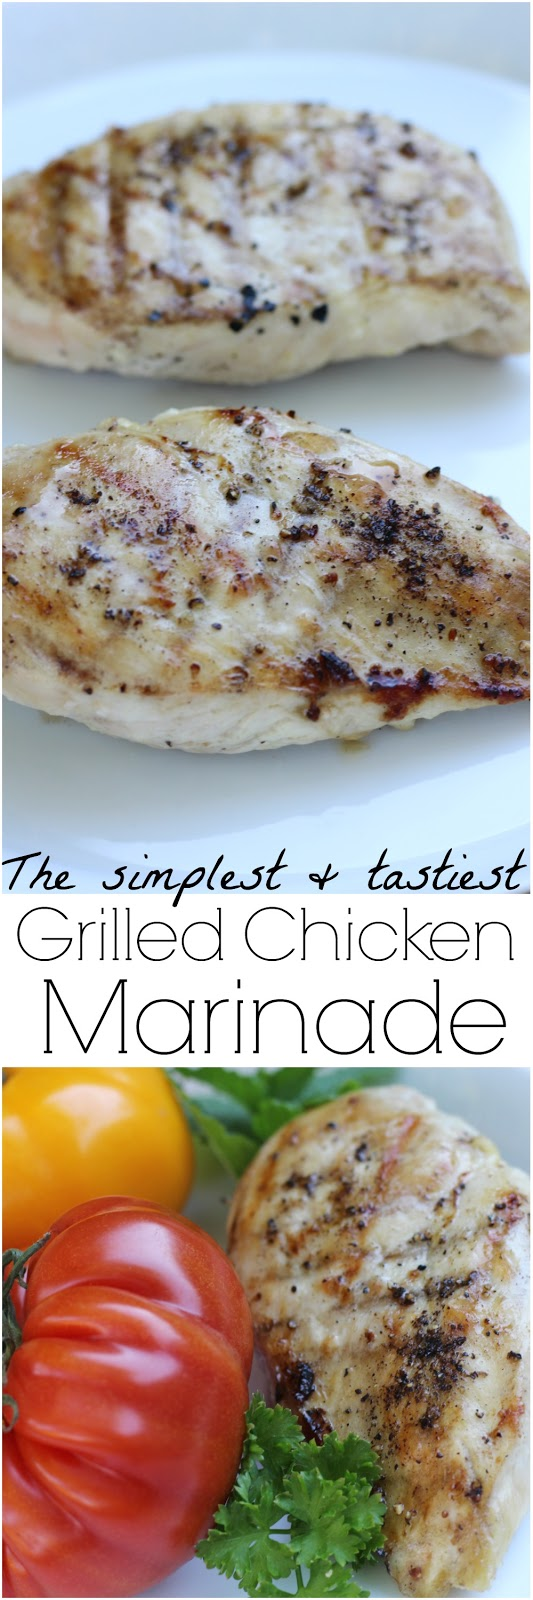 This simple chicken marinade has only 3 ingredients and is so tasty!